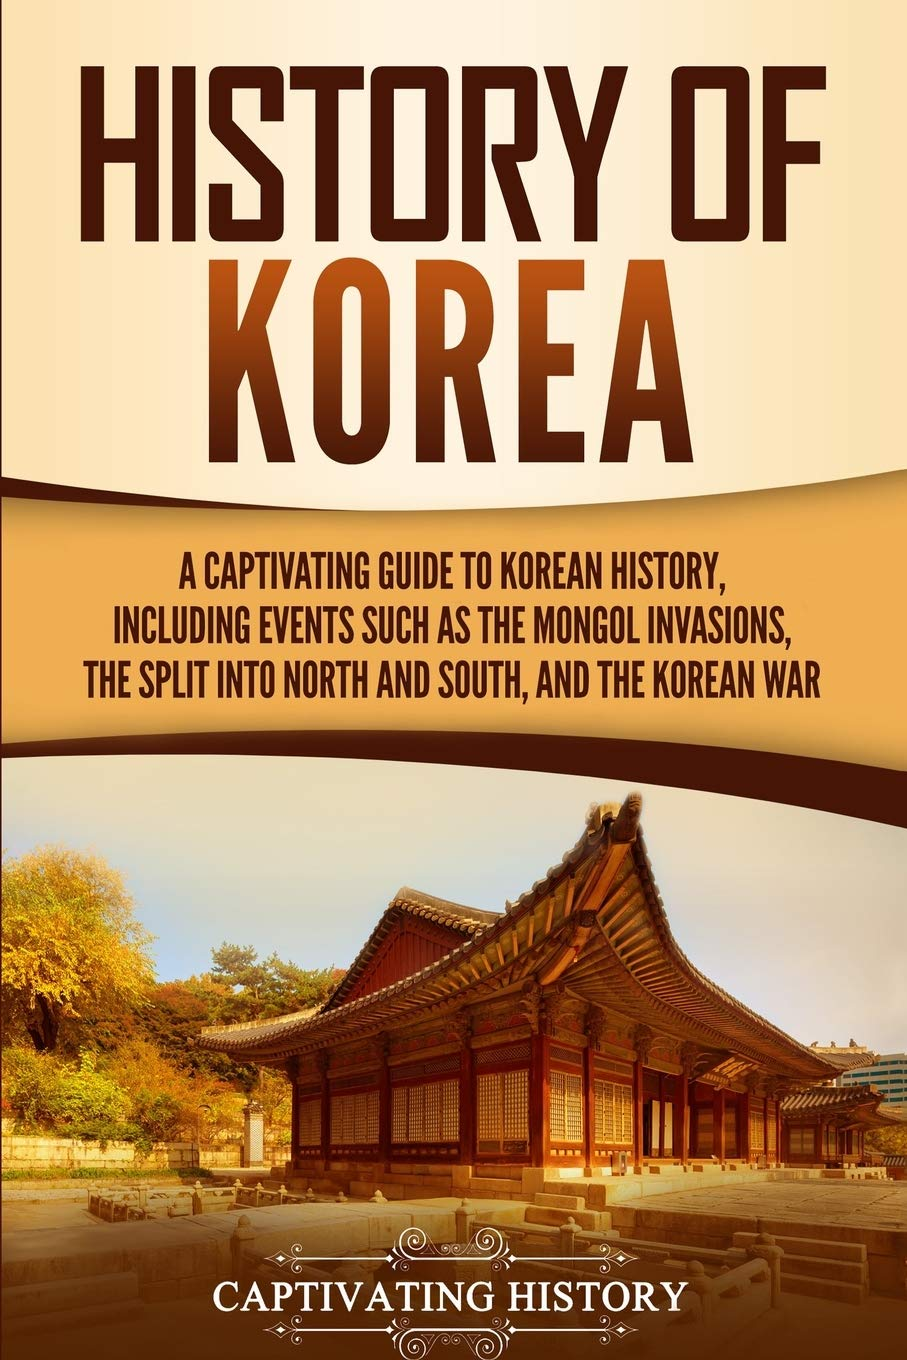 Image OfHistory Of Korea: A Captivating Guide To Korean History, Including Events Such As The Mongol Invasions, The Split Into Nor...